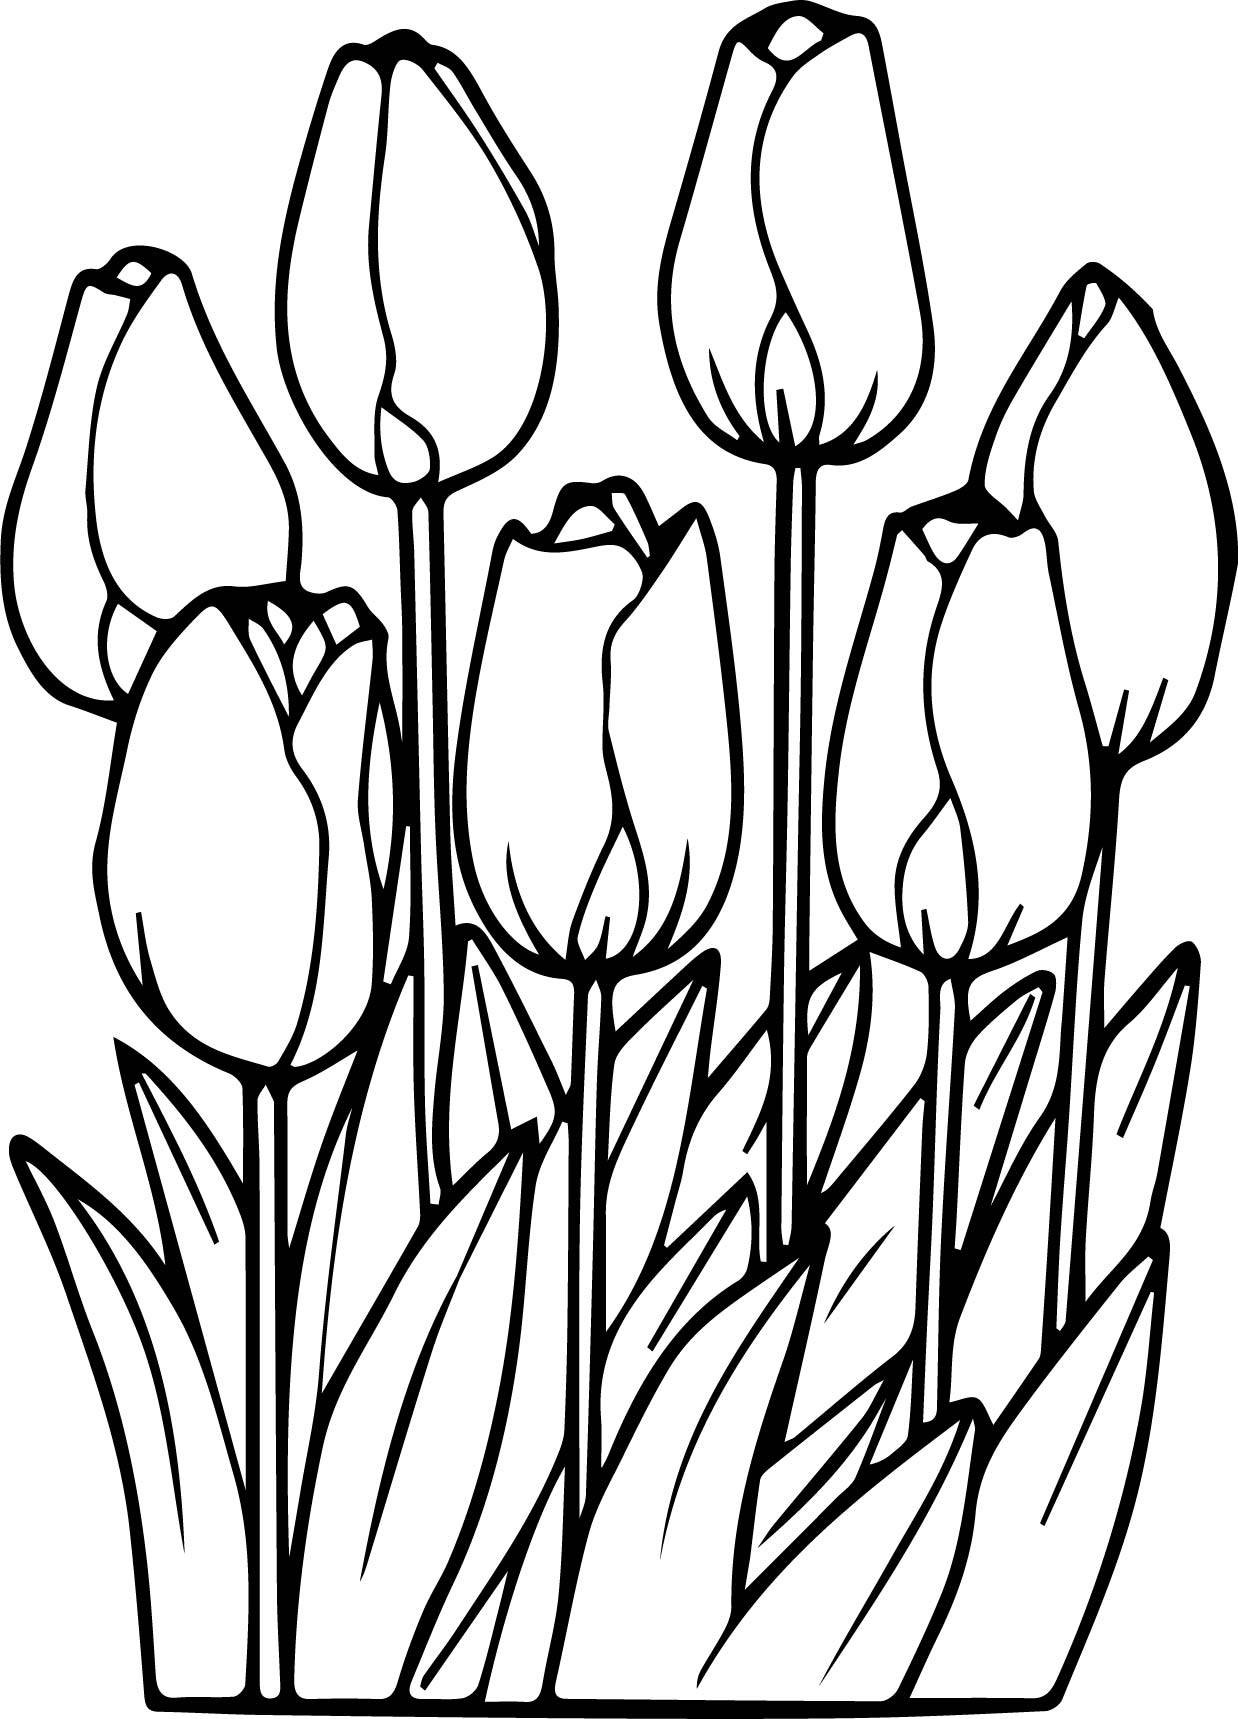 tulip coloring pages - seven tulips coloring page